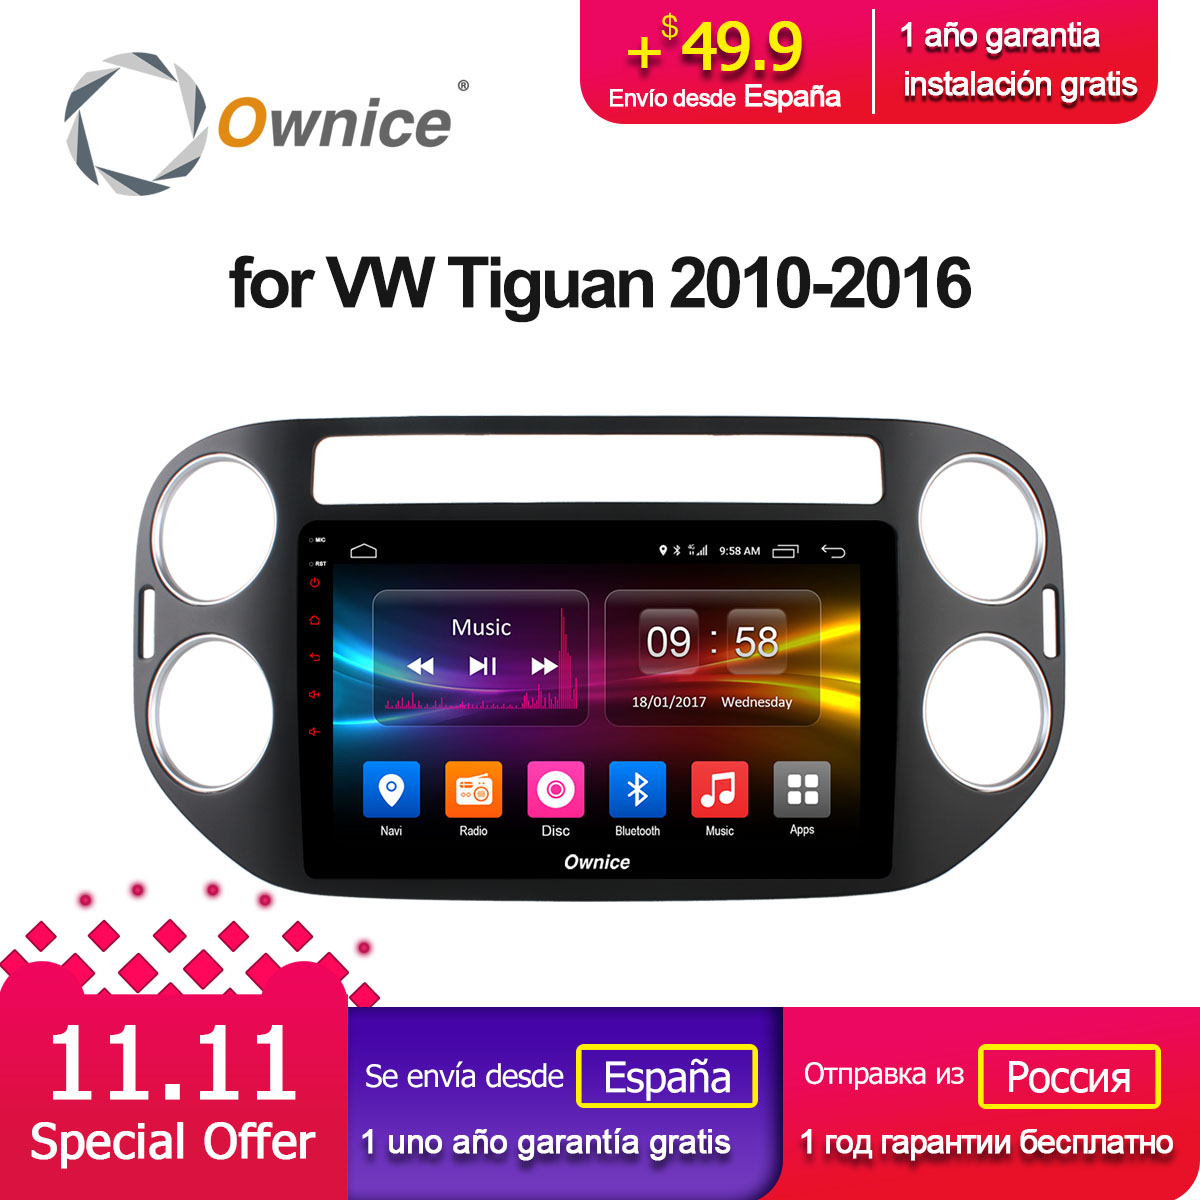 Ownice C500+ G10 Android 8.1 Octa 8 core car DVD radio gps navi for VW Tiguan 2010 2011 2012 2013 2014 2015 2016 2G RAM 32G ROM ownice c500 octa core android 6 0 car dvd gps for mazda 6 ruiyi ultra 2008 2009 2010 2011 2012 wifi 4g radio 2gb ram bt 32g rom